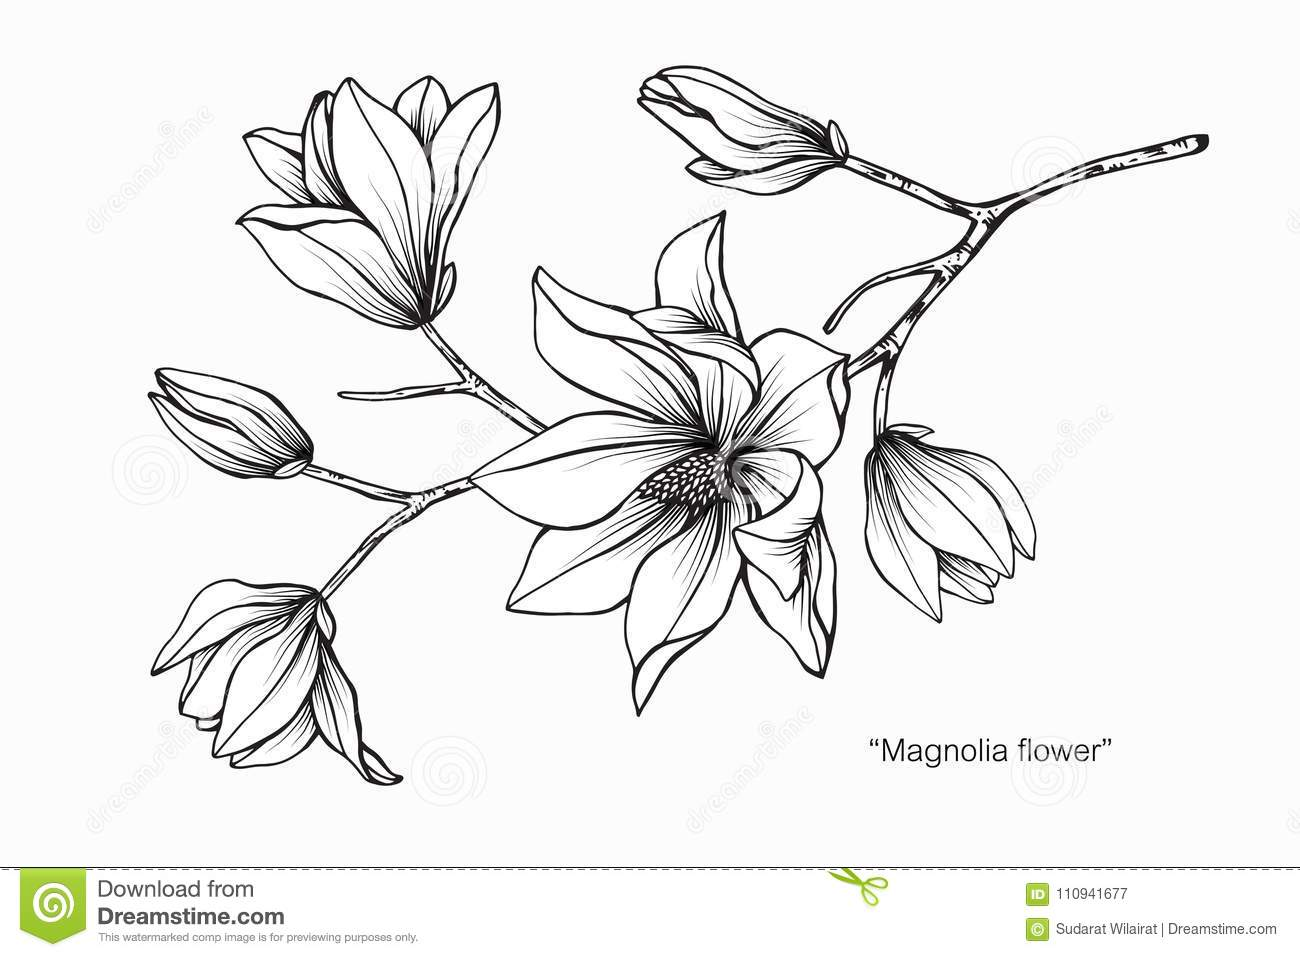 Magnolia Flower Drawing Illustration Black And White With